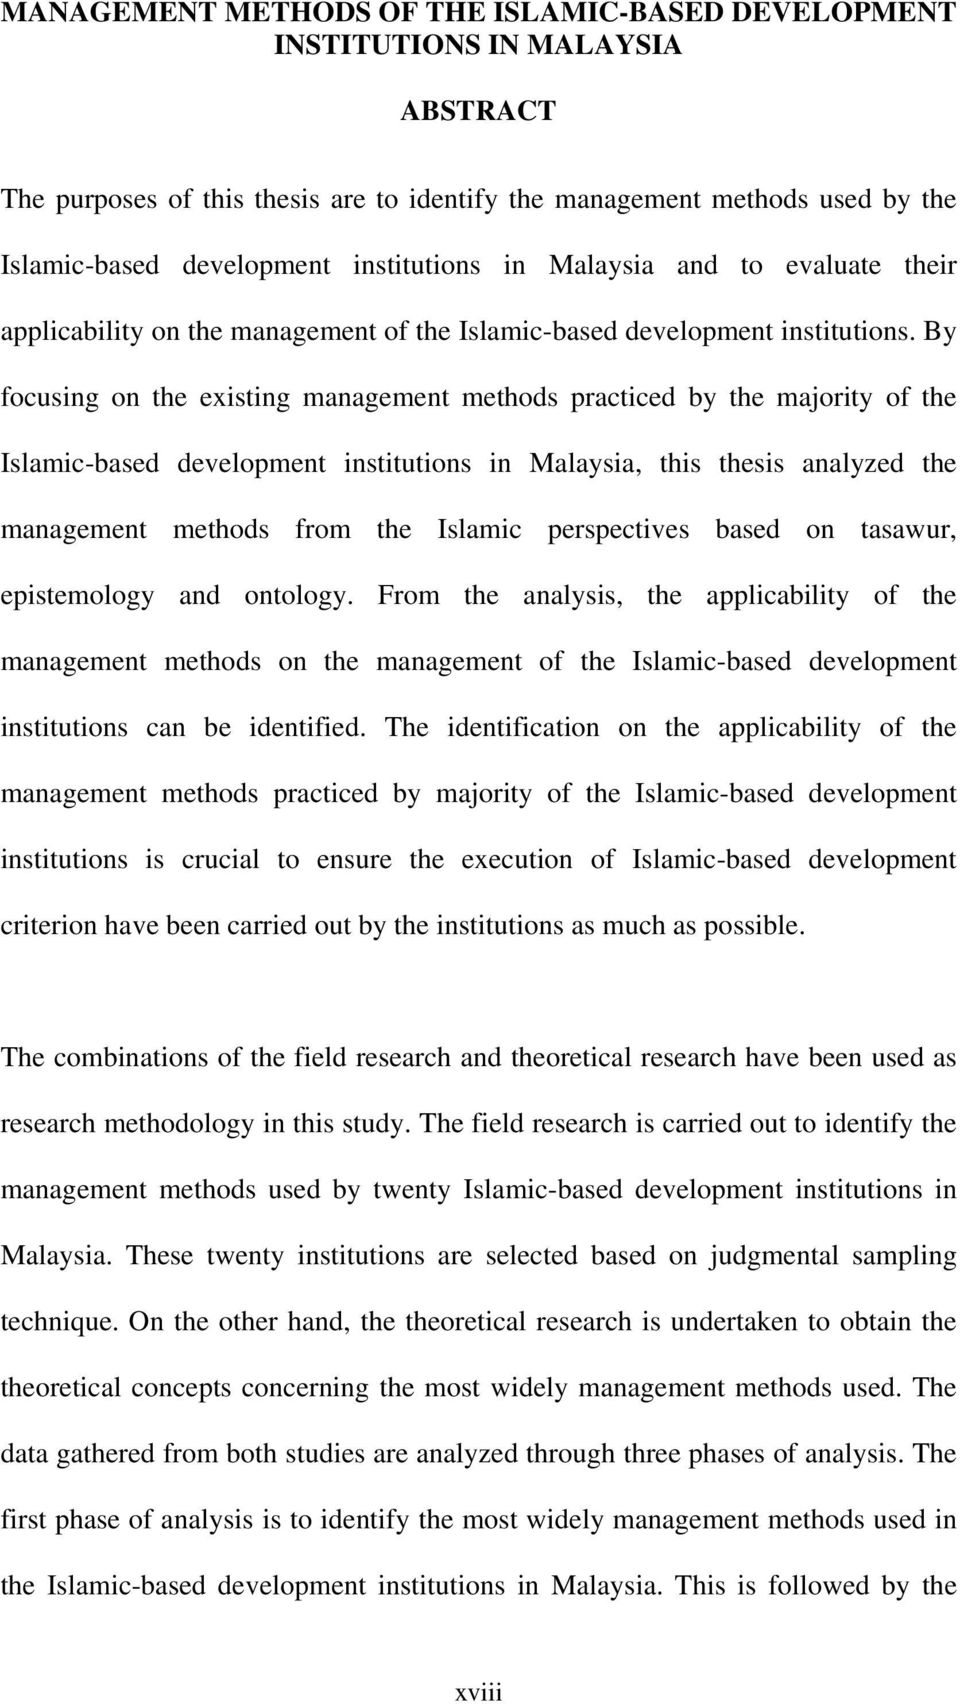 By focusing on the existing management methods practiced by the majority of the Islamic-based development institutions in Malaysia, this thesis analyzed the management methods from the Islamic